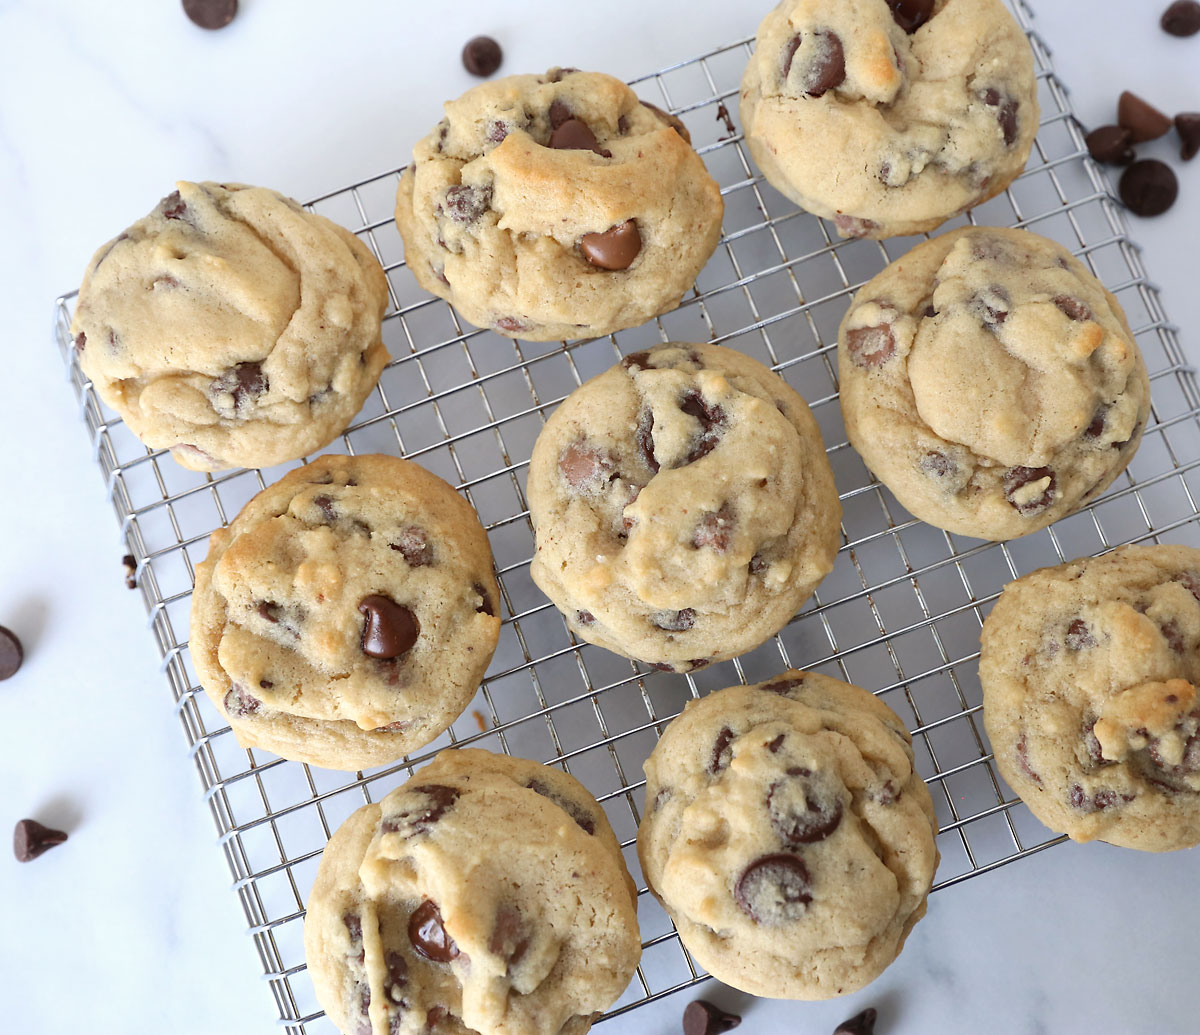 Soft, delicious chocolate chip cookies on a cooking rack